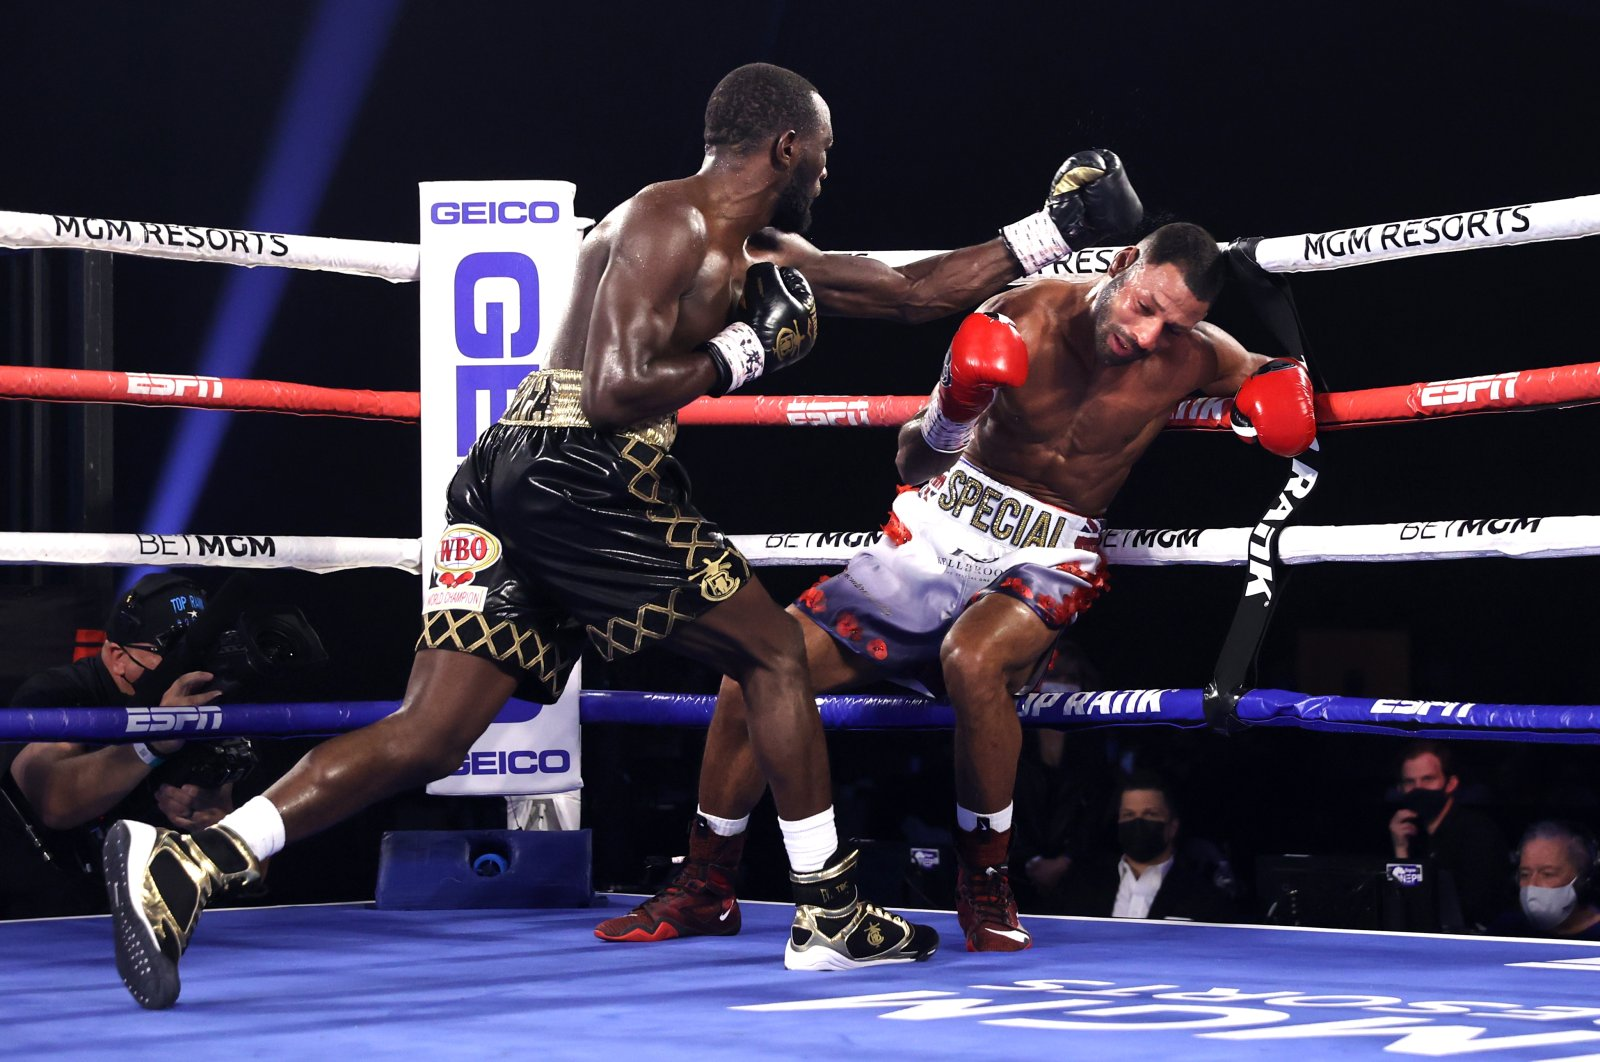 Terence Crawford and Kell Brook exchange punches during their World Boxing Organization welterweight bout in Las Vegas, U.S., Nov. 14, 2020. (Getty Images)